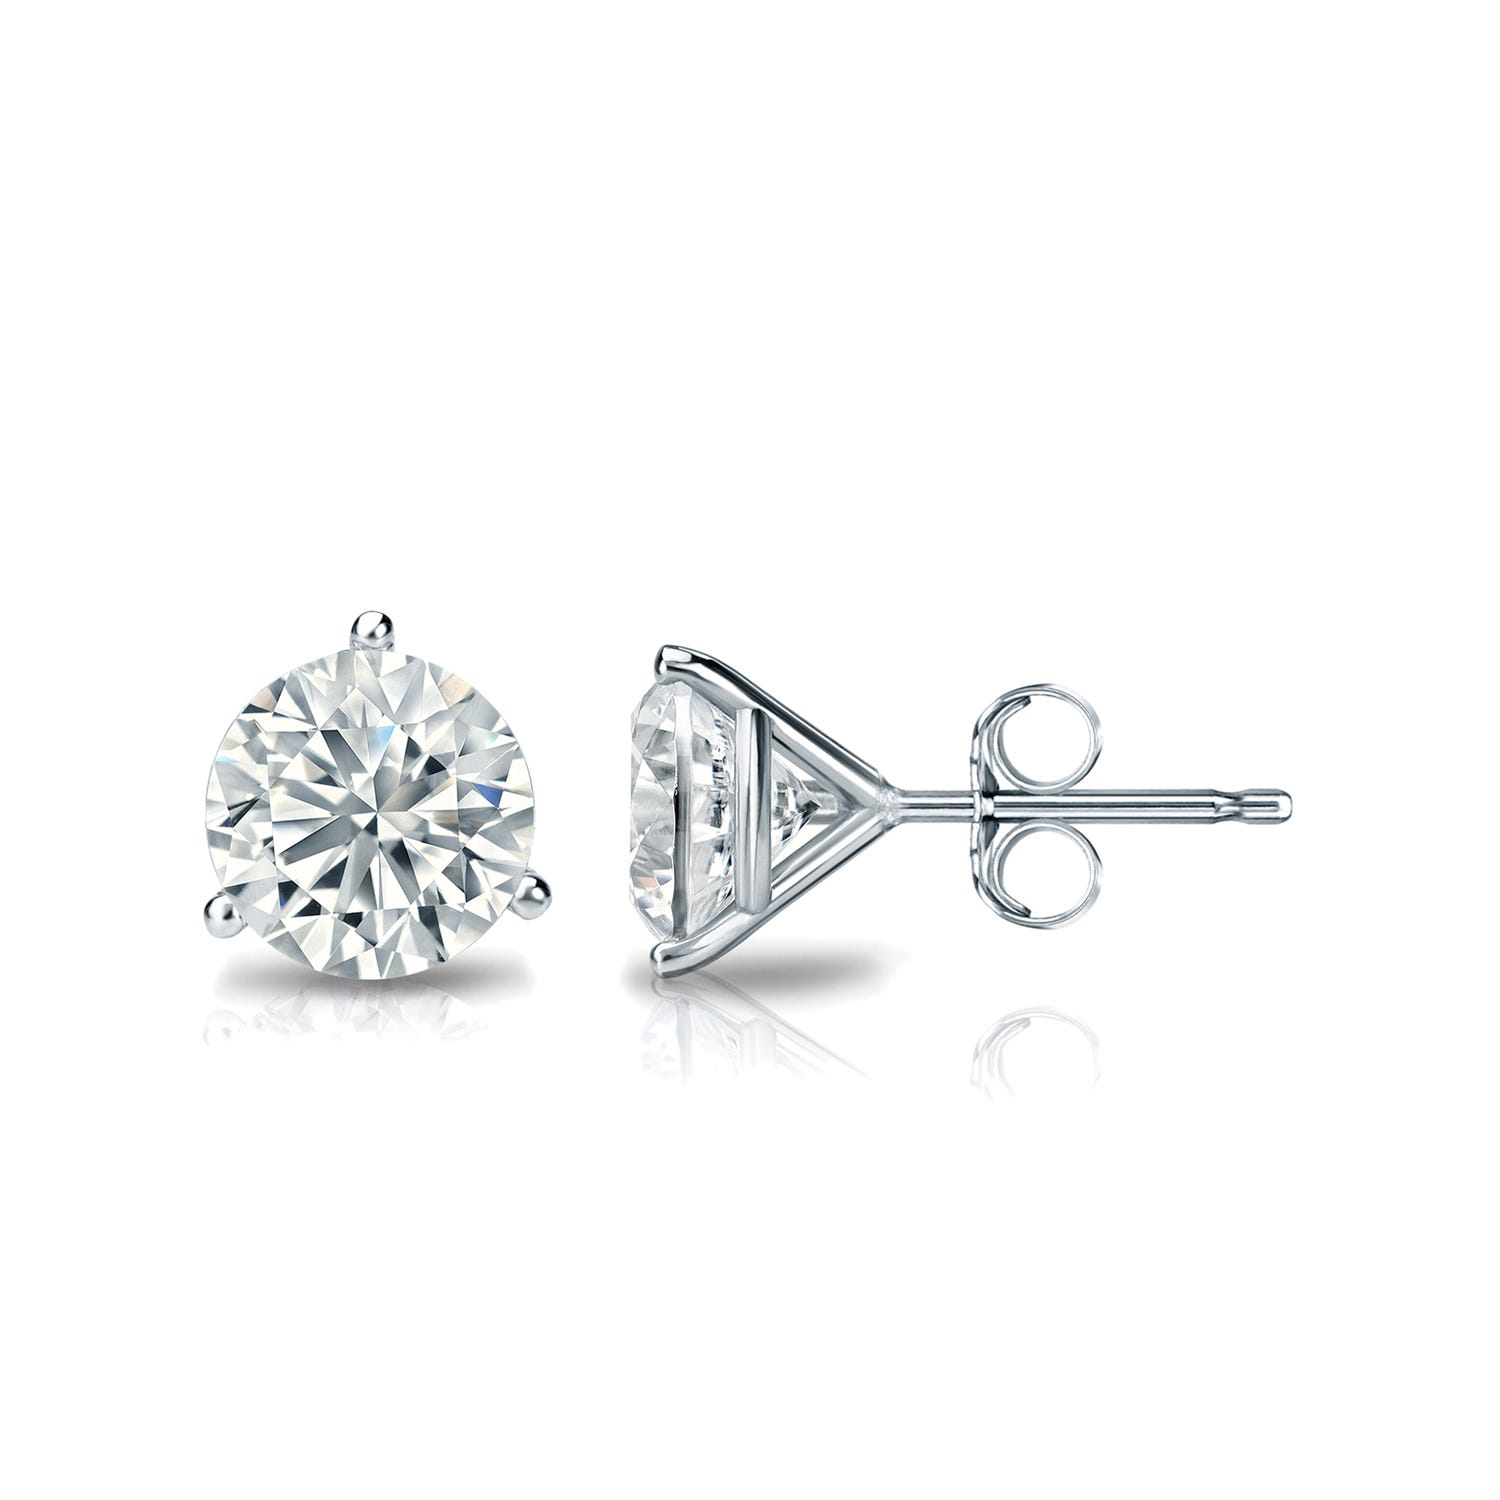 1 CTTW Round Diamond Solitaire Stud Earrings IJ I2 in 10K White Gold IGI Certified 3-Prong Setting